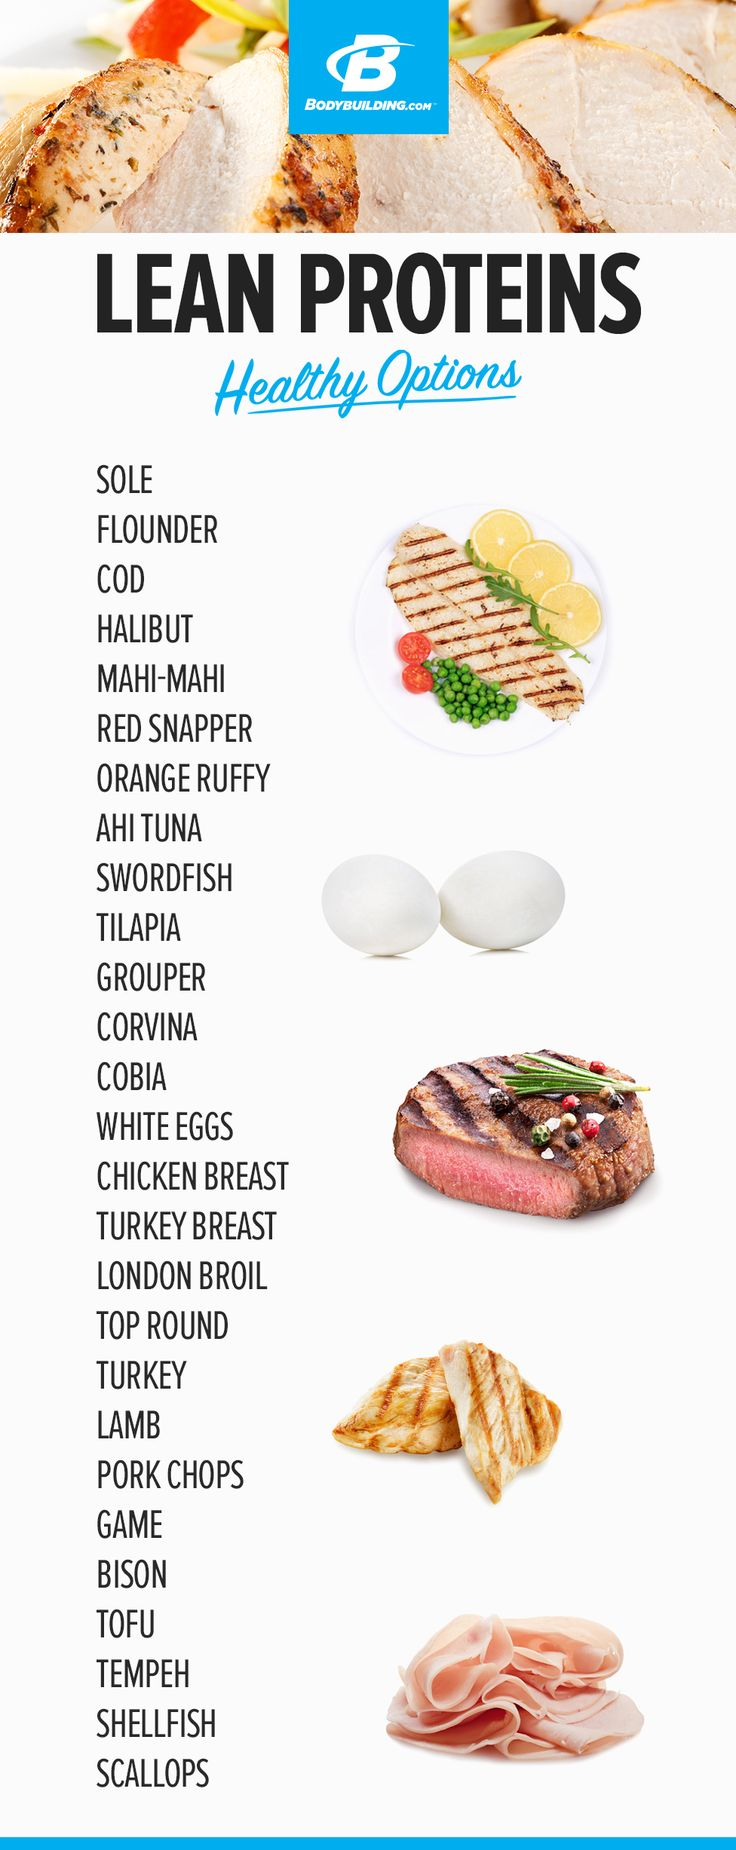 LEAN PROTEIN HEALTHY OPTIONS! Every food item you need